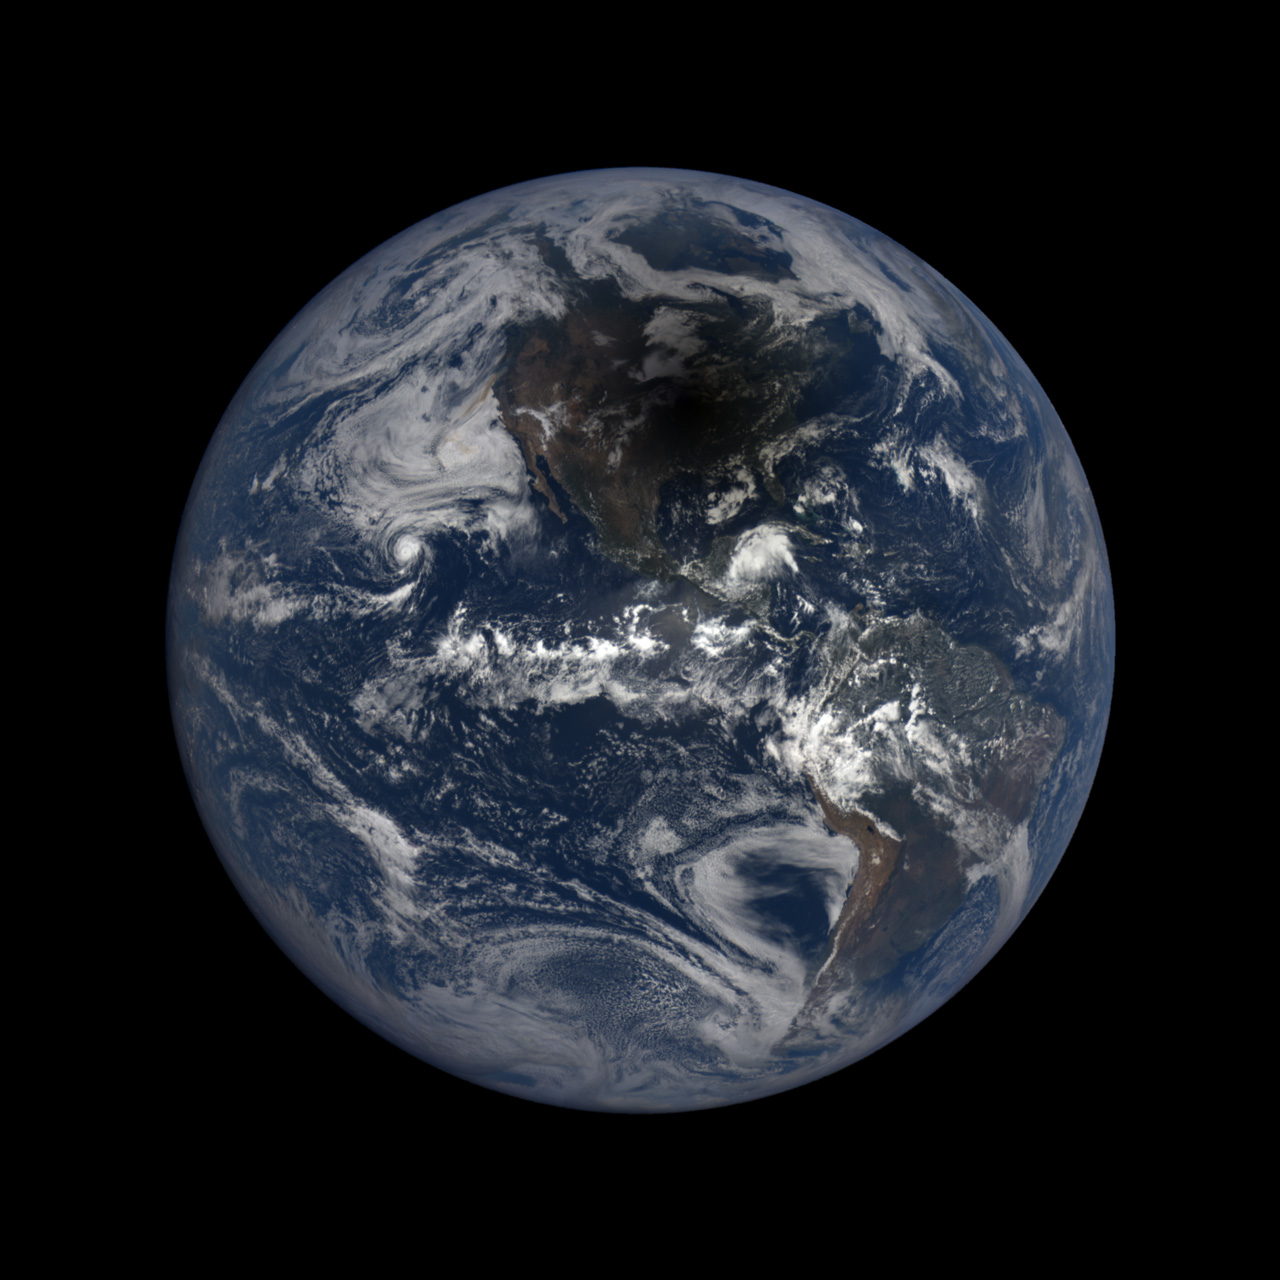 Full disk view of Earth with solar eclipse shadow visible over North America.